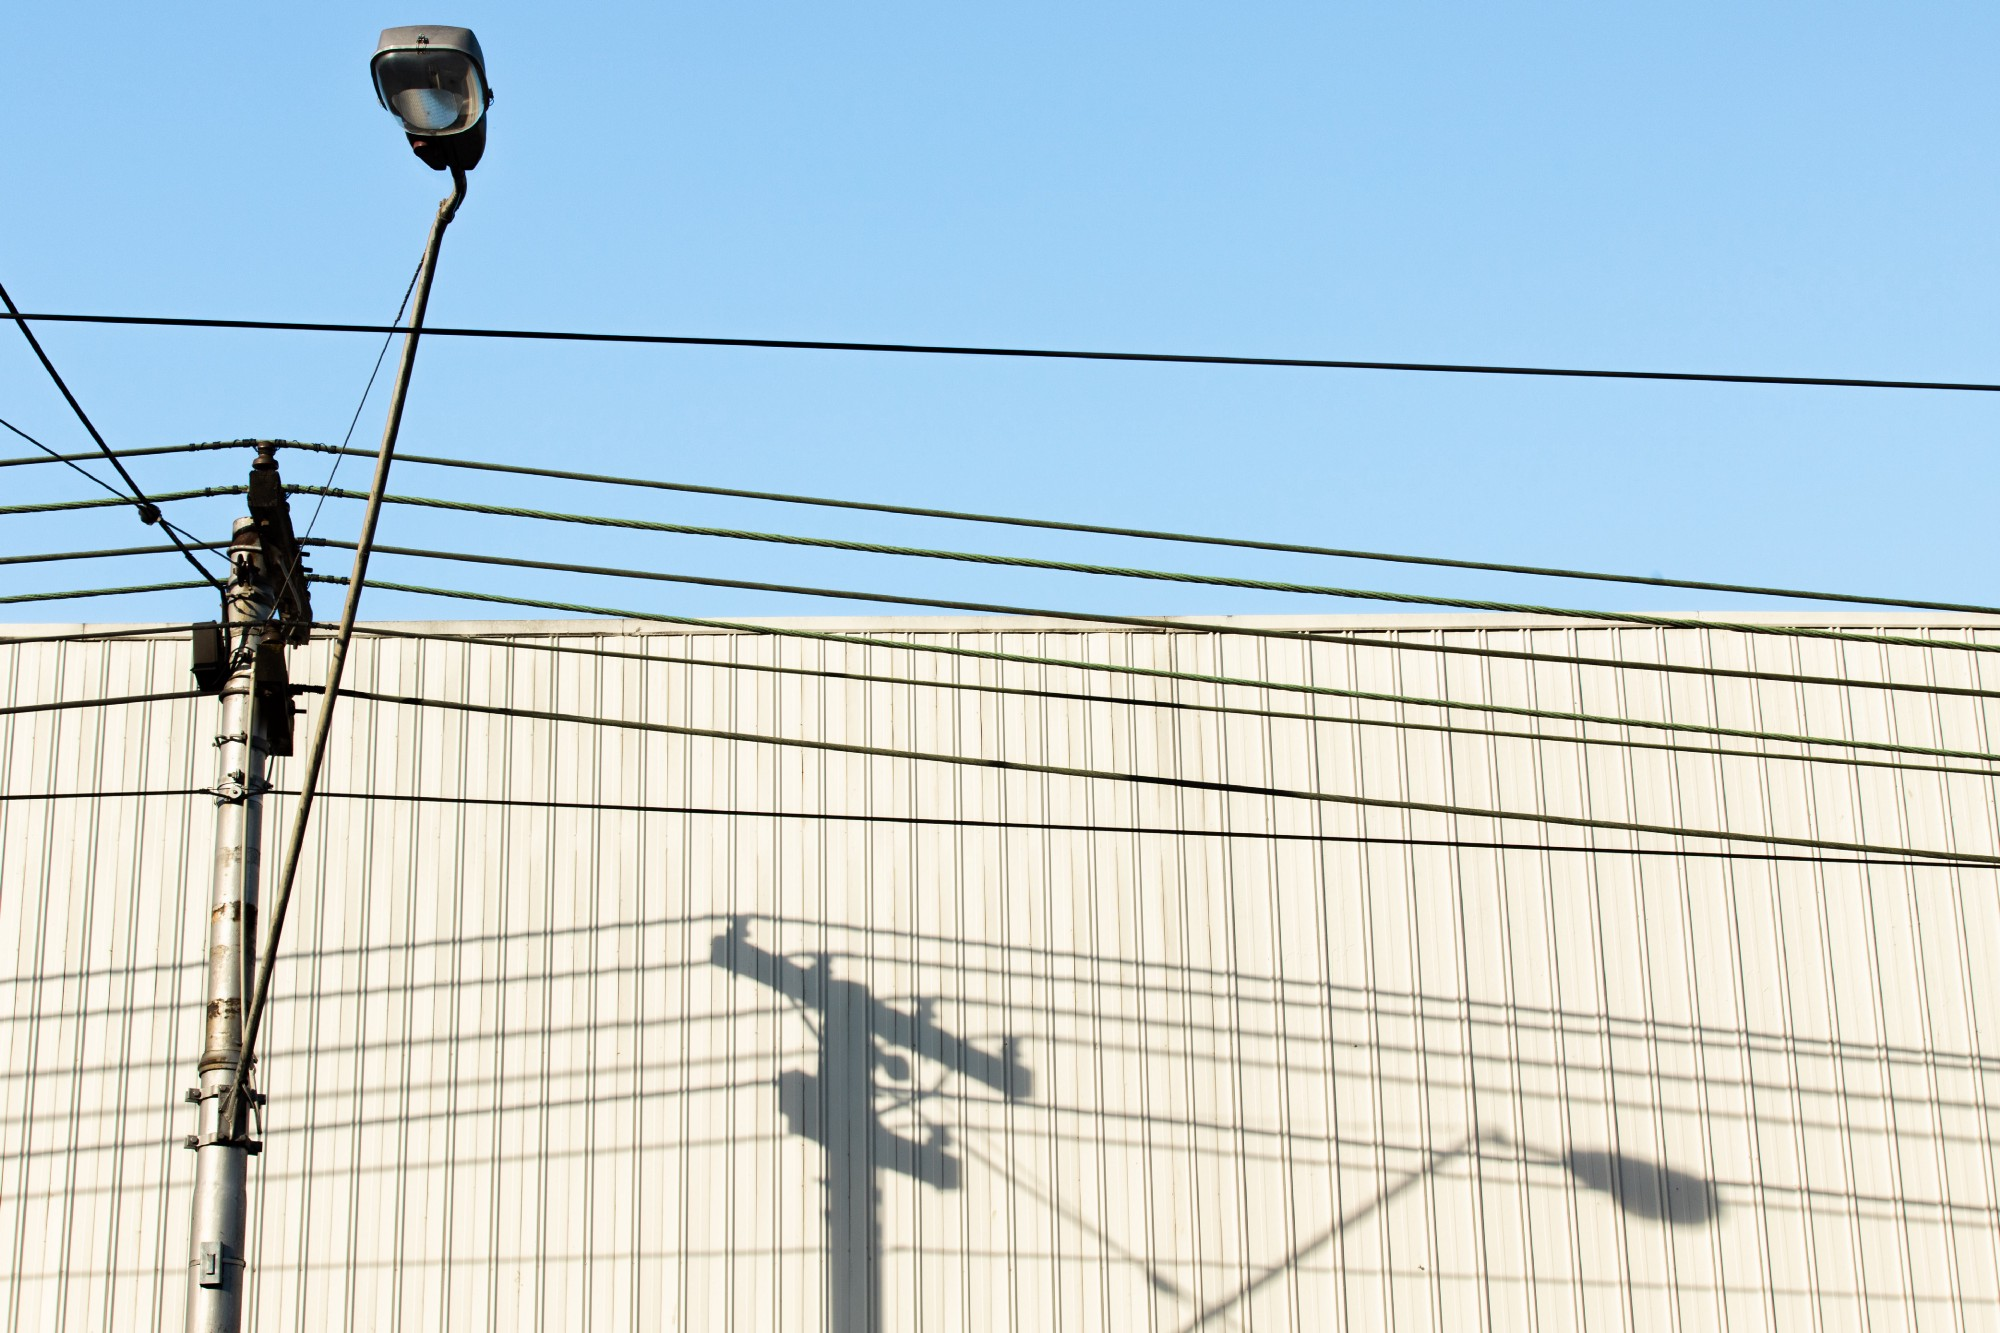 A camera attached to a utility pole with wires against a beige building and blue sky.